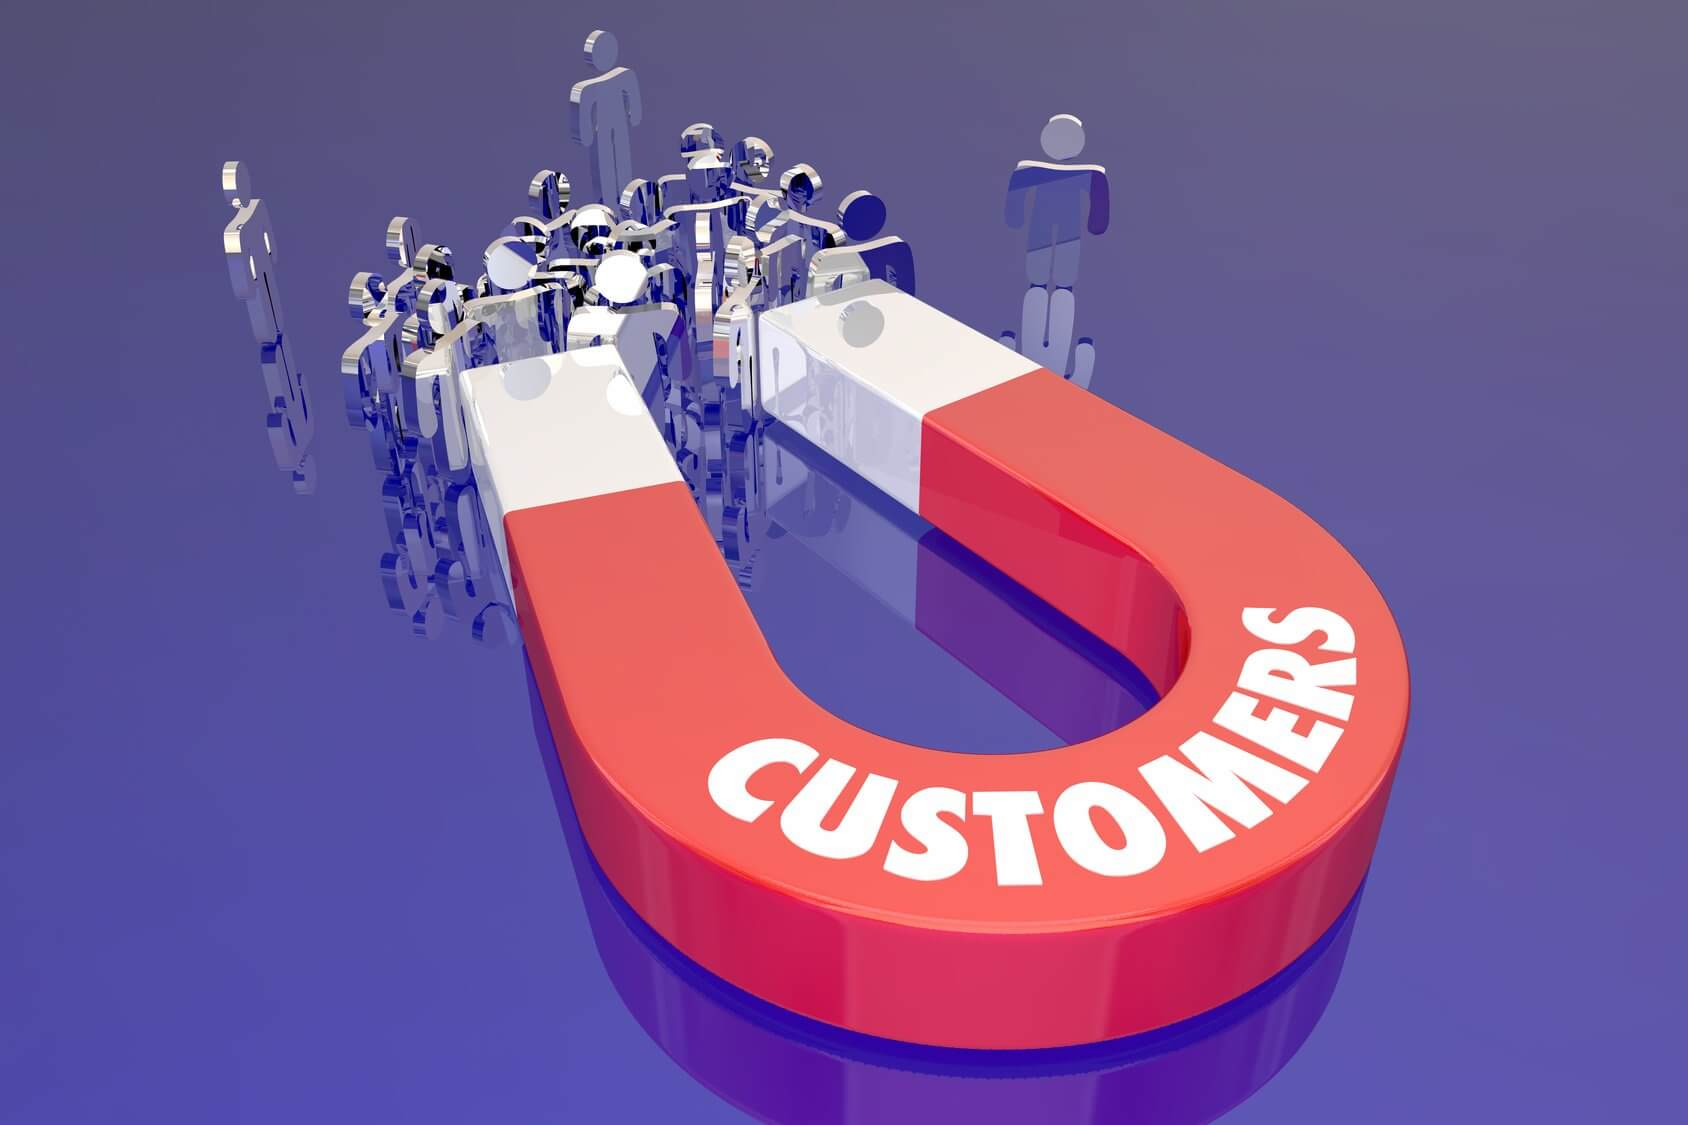 attract-customers